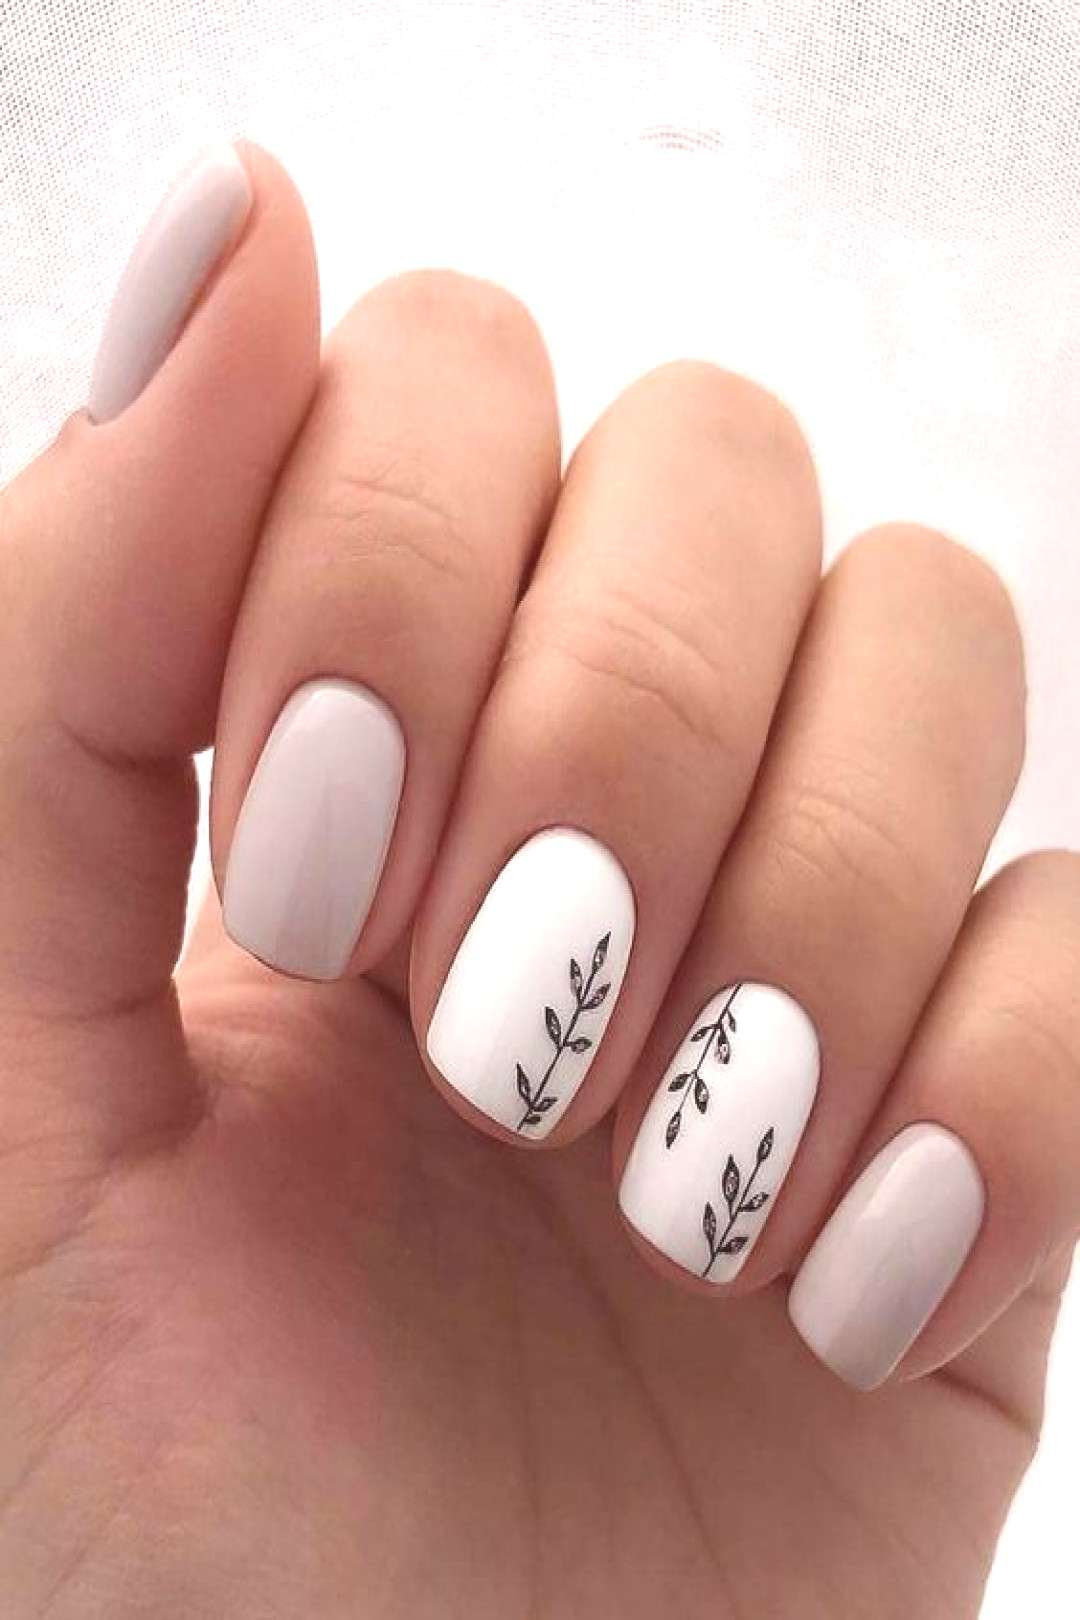 50+ Simple and Amazing Gel Nail Designs For Summer - Page 49 of 50 - SooPush#ama... 50+ Simple and